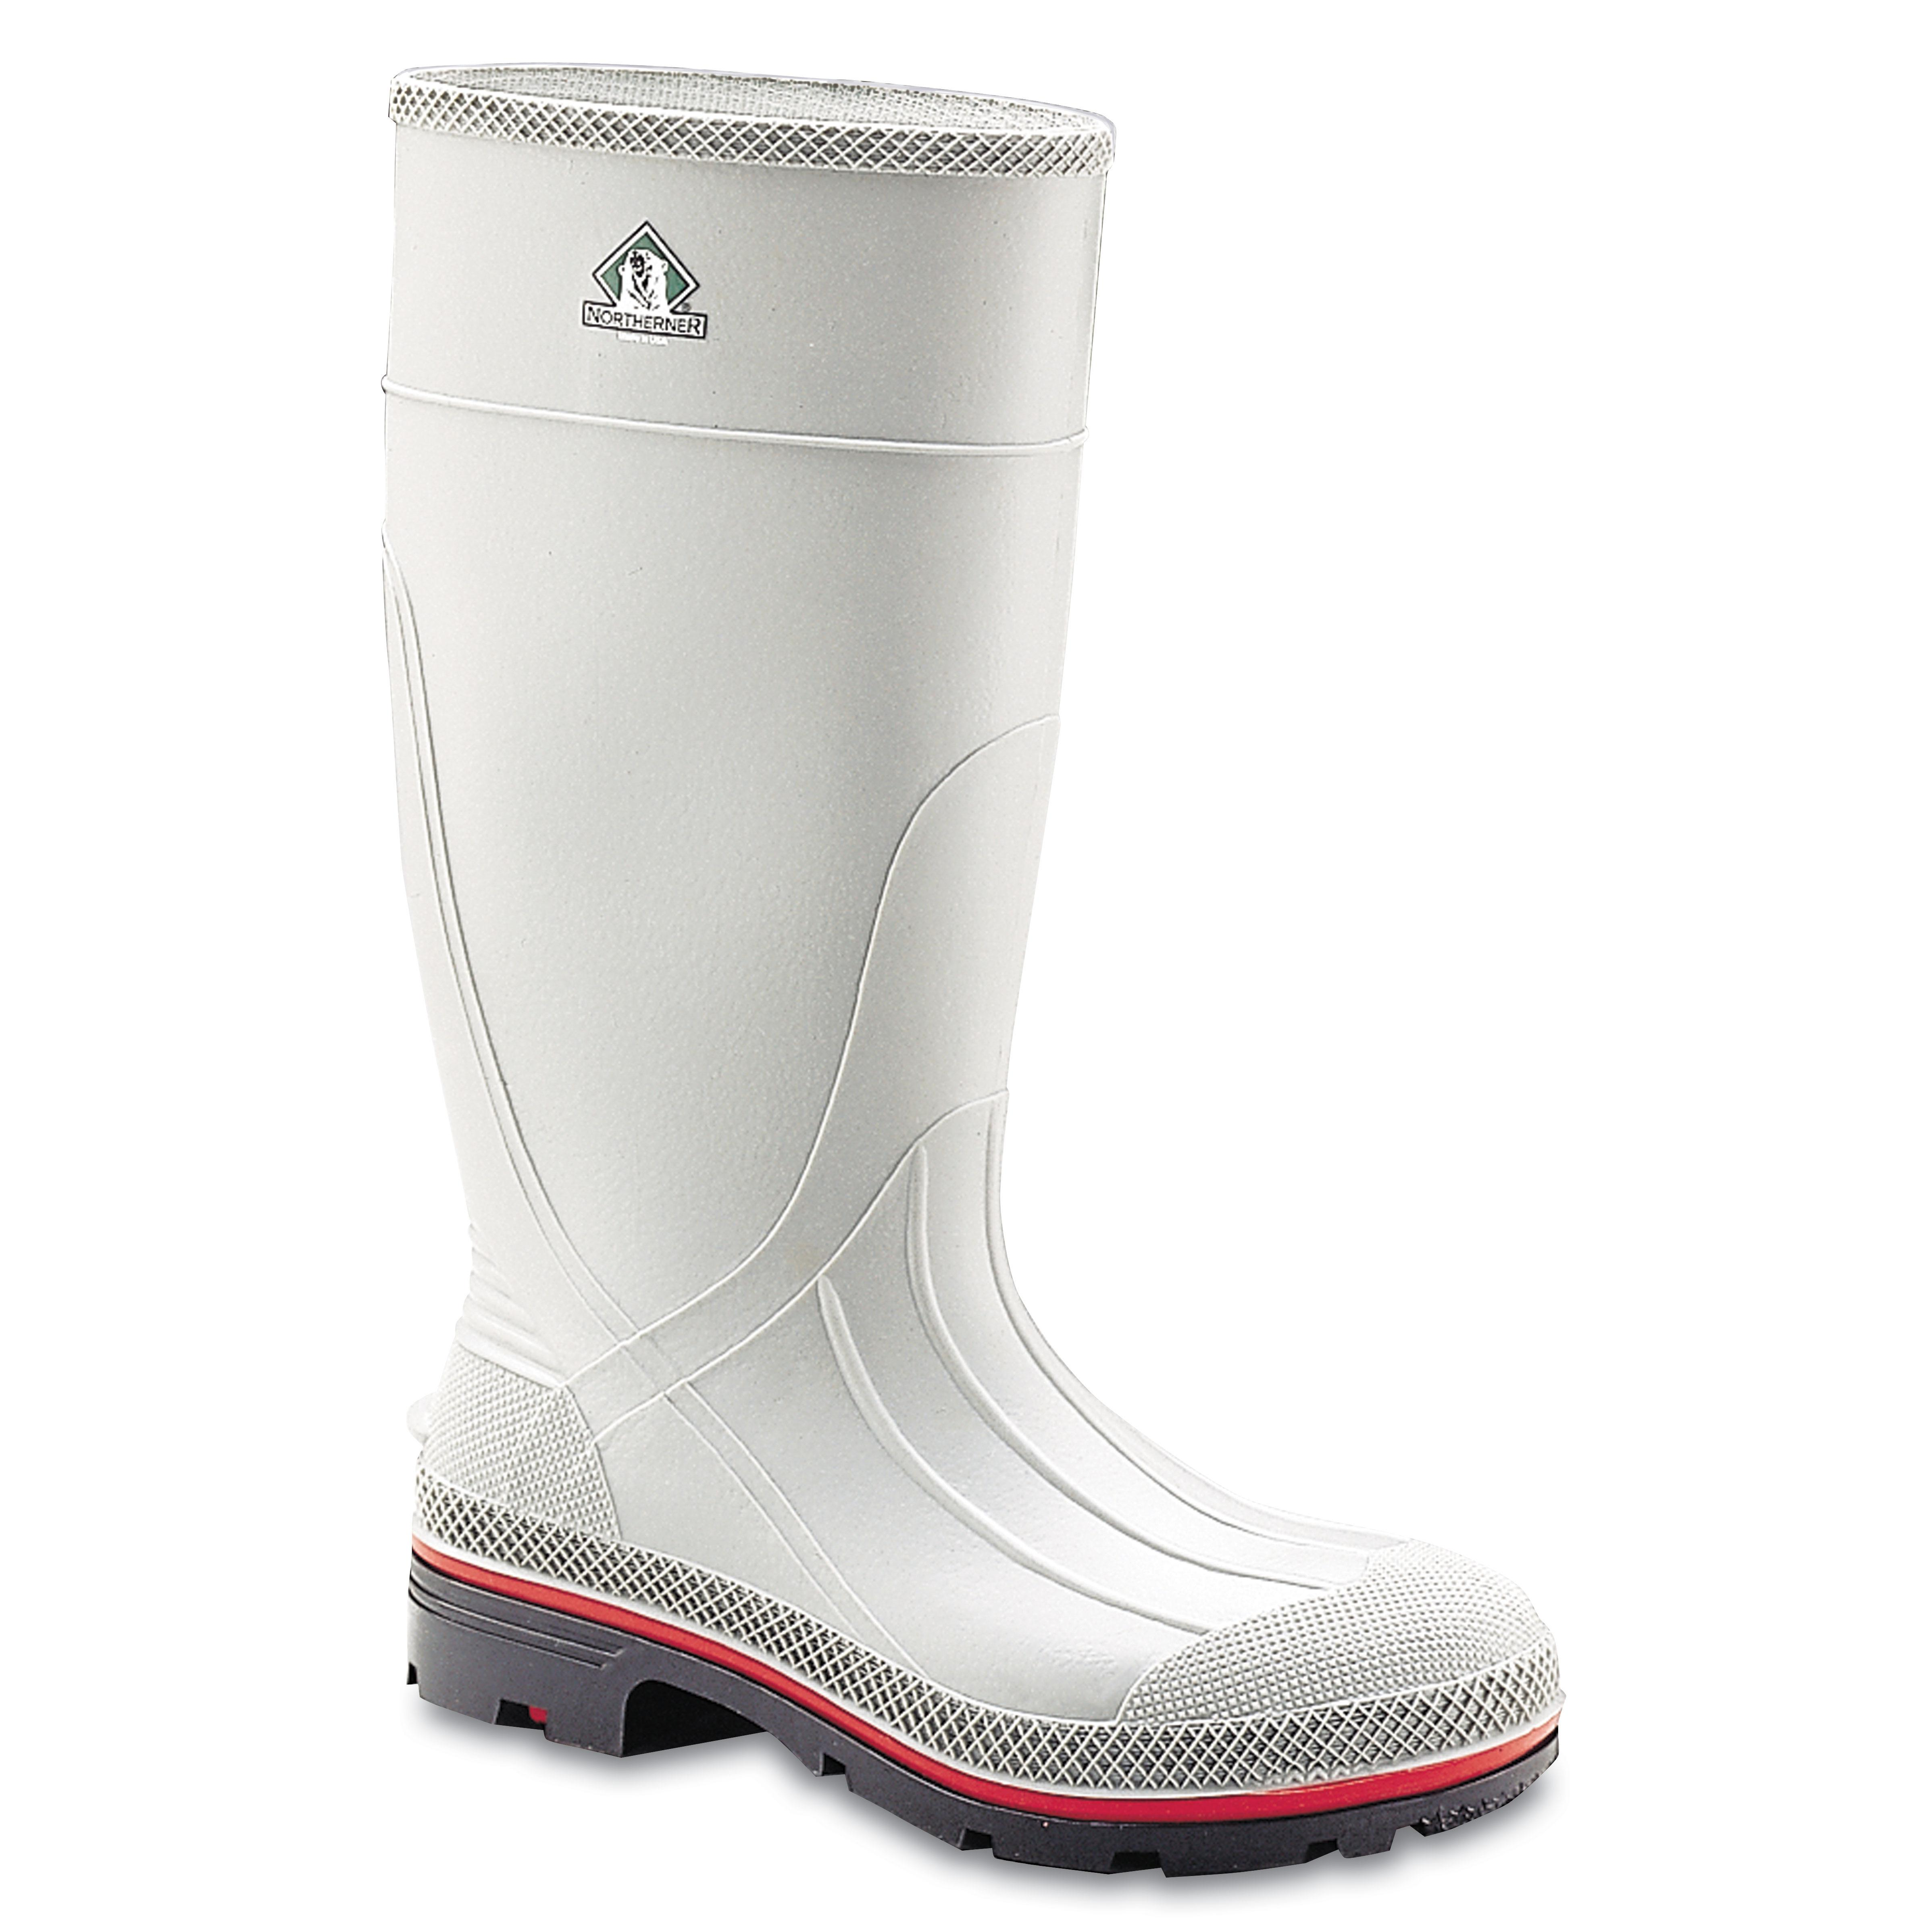 09dcb15aac8 Servus by Honeywell Northerners Series Max High Boot